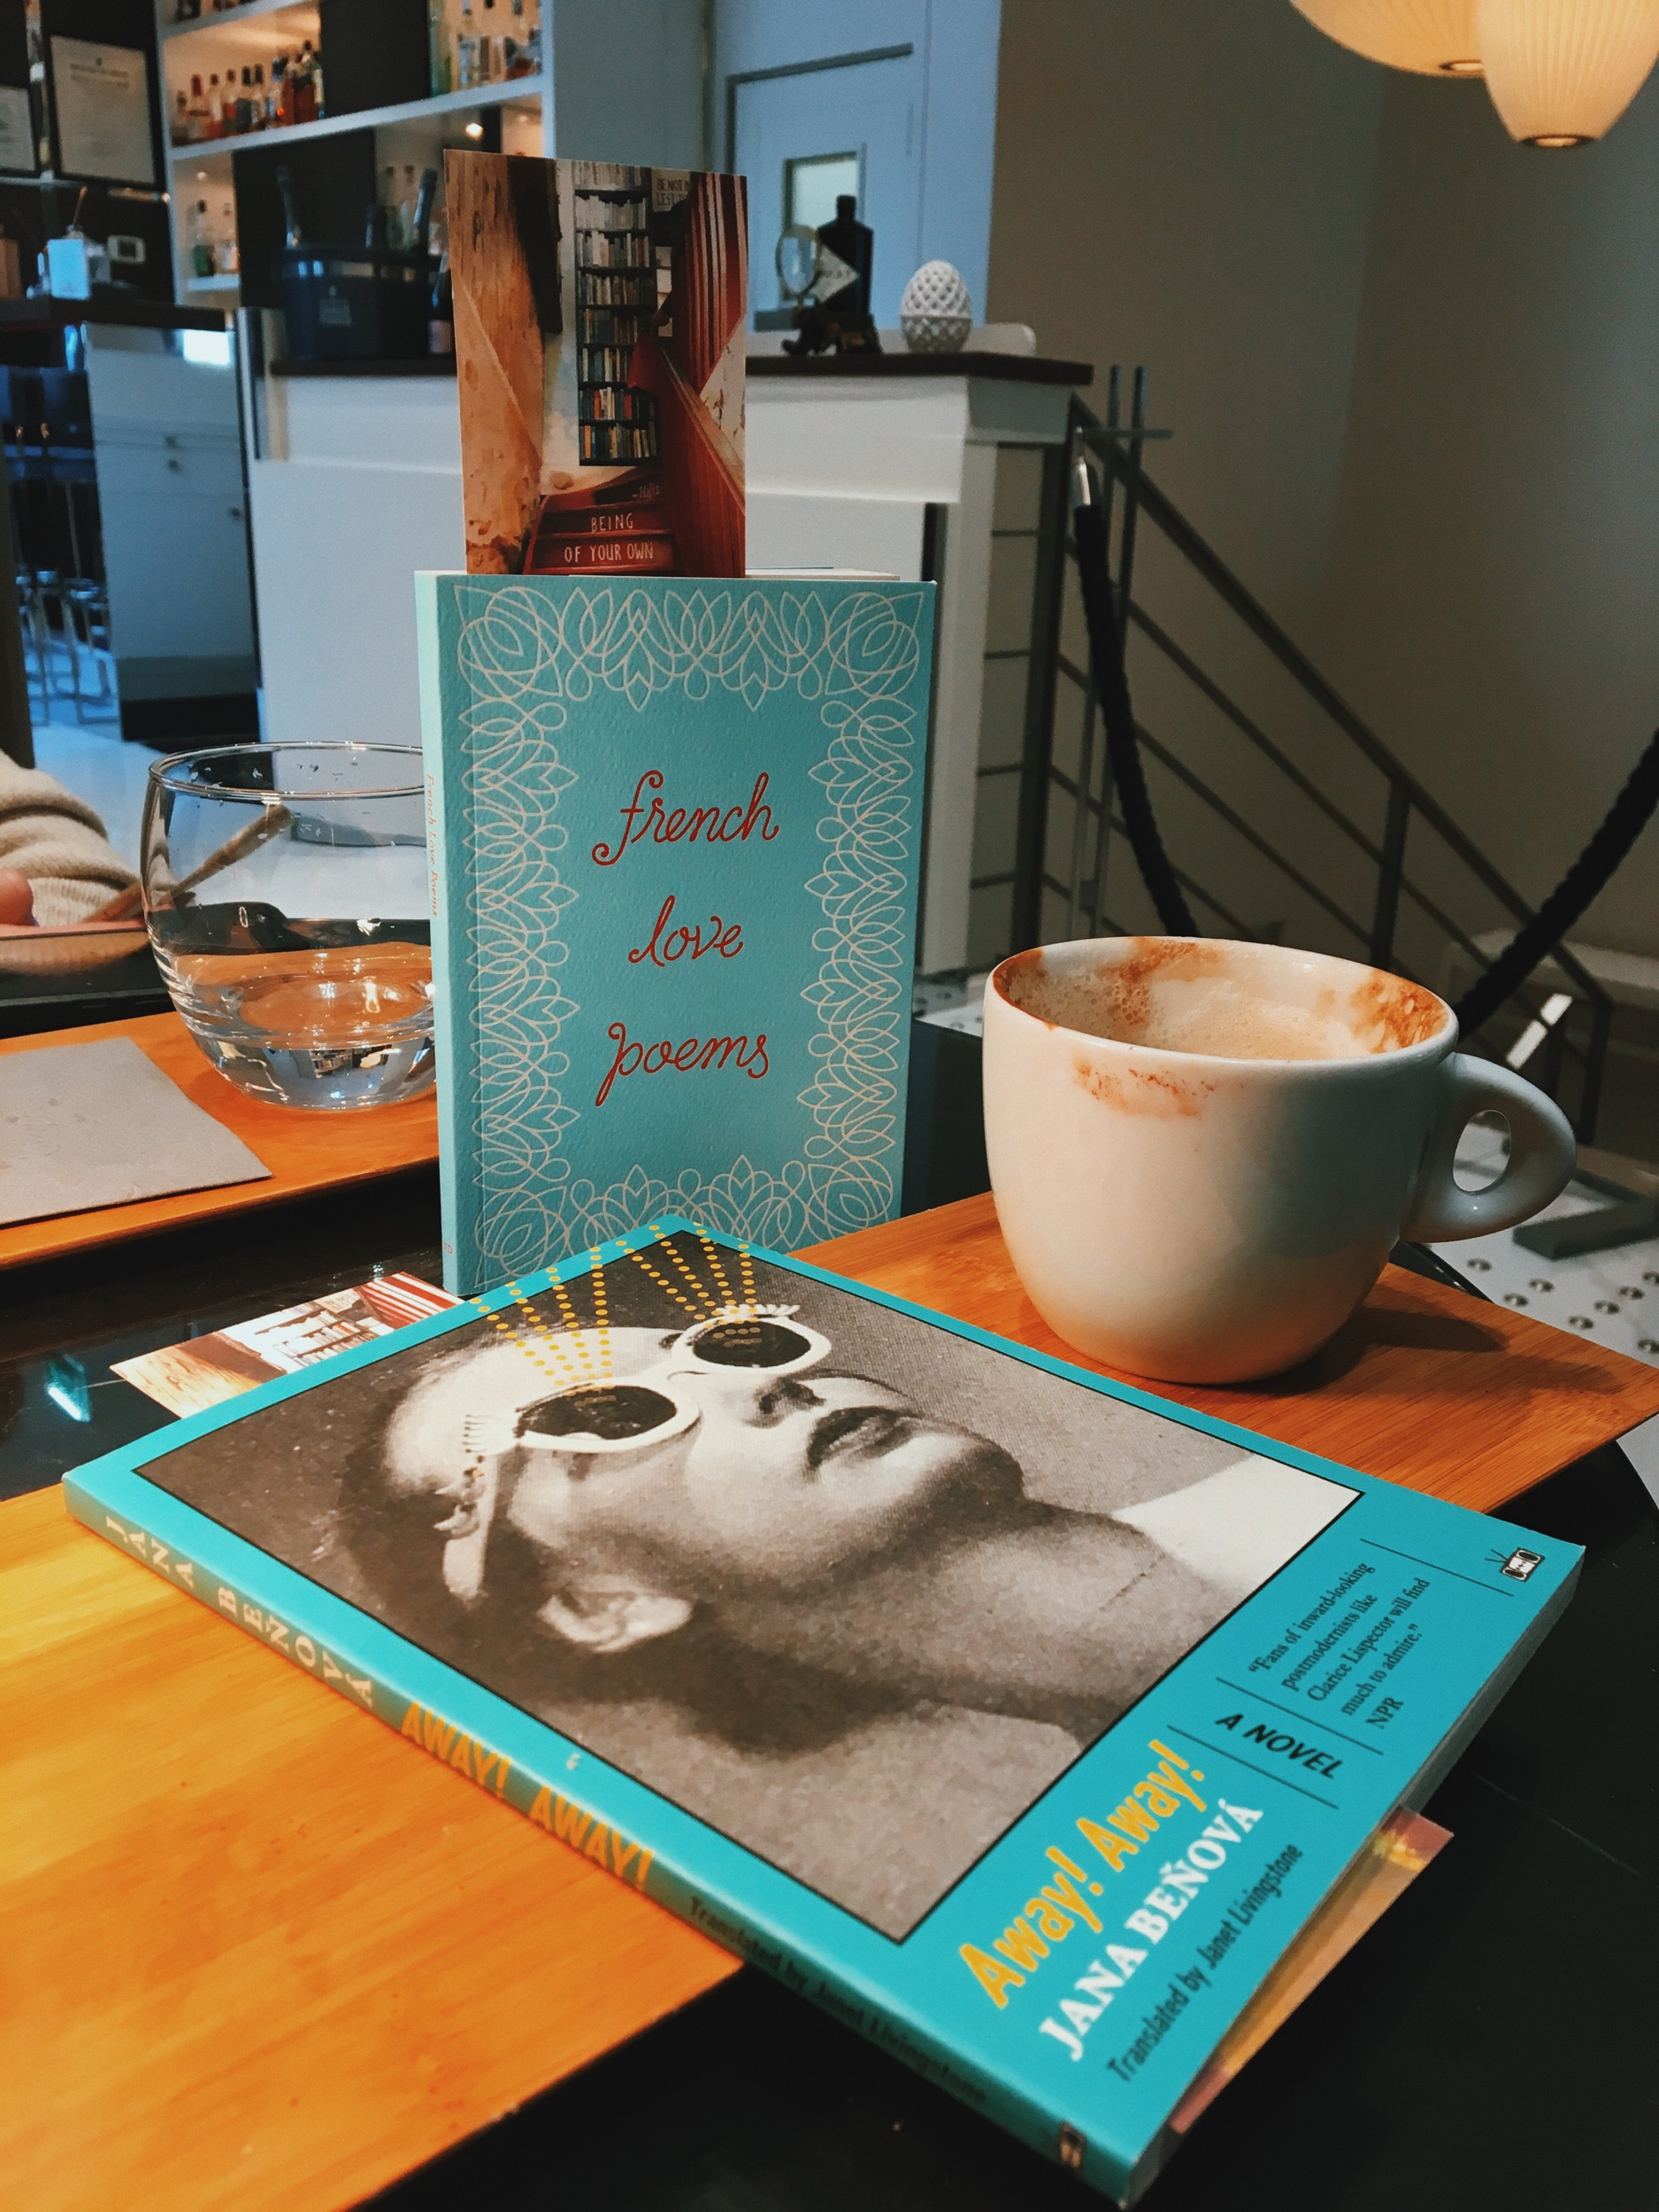 Coffee, lipstick and strange postmodernist literature in Paris: what's not to love?